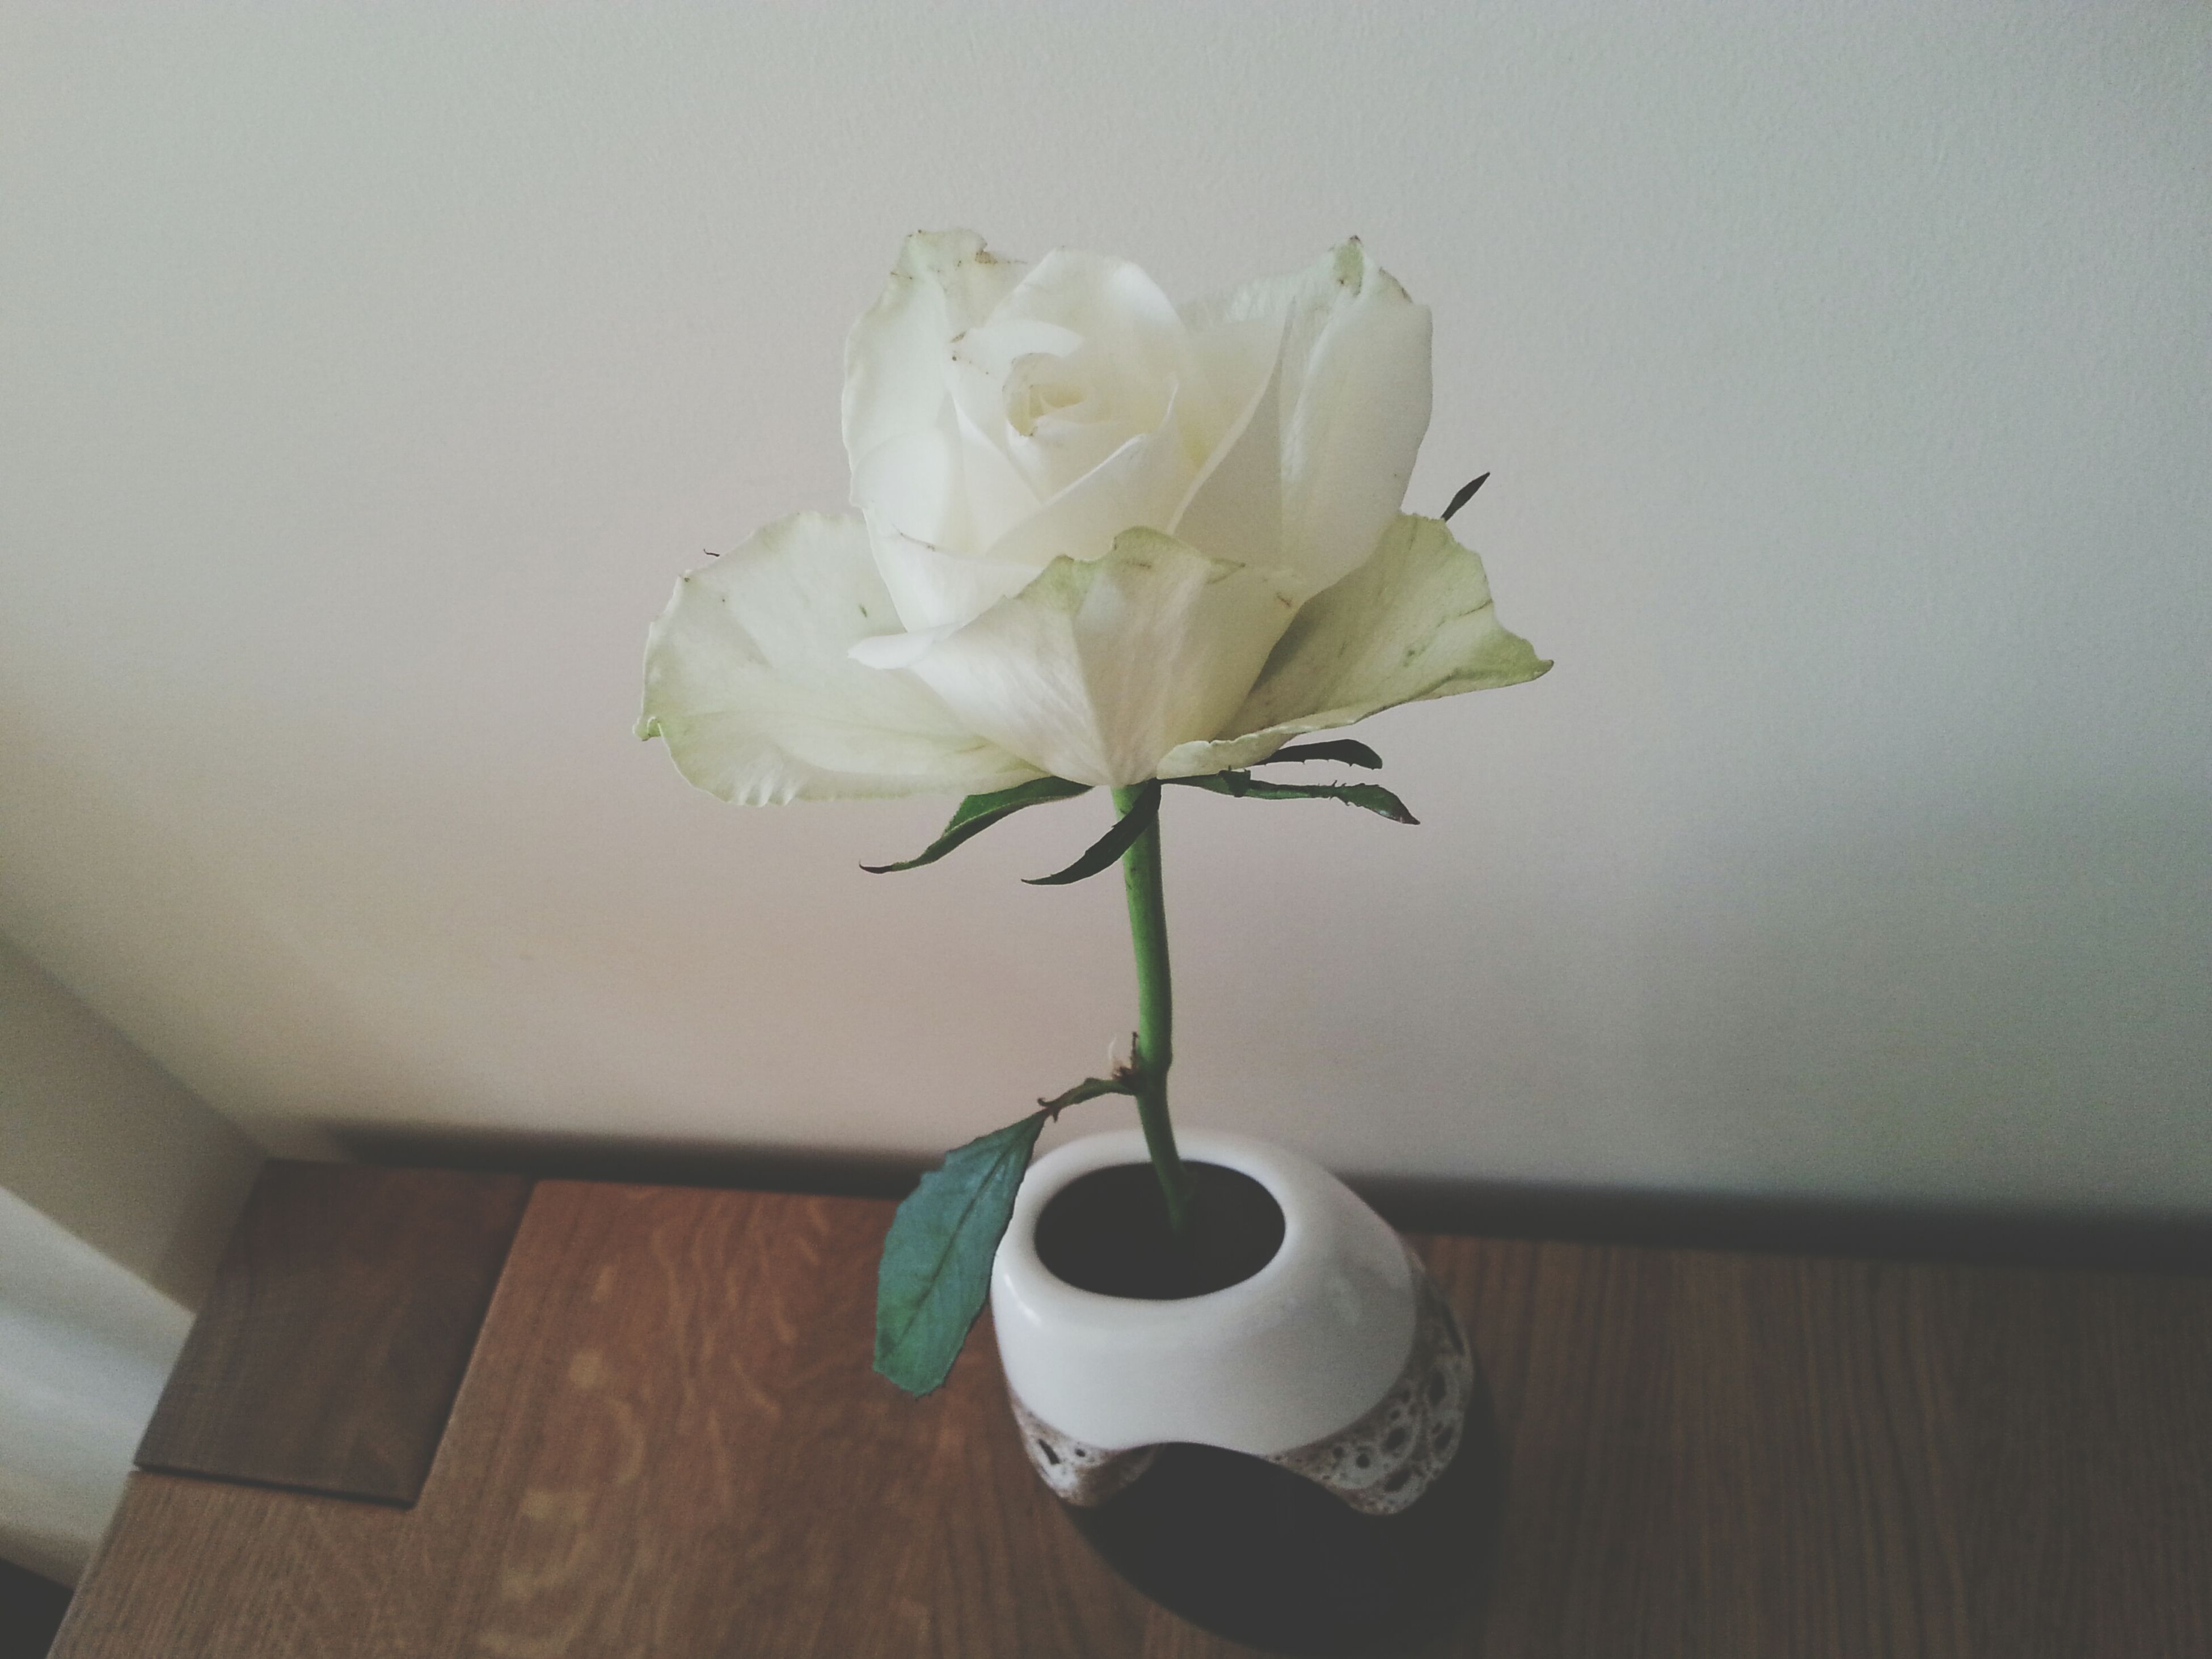 flower, indoors, vase, freshness, table, fragility, petal, flower head, white color, still life, close-up, home interior, decoration, stem, wall - building feature, rose - flower, flower arrangement, no people, plant, beauty in nature